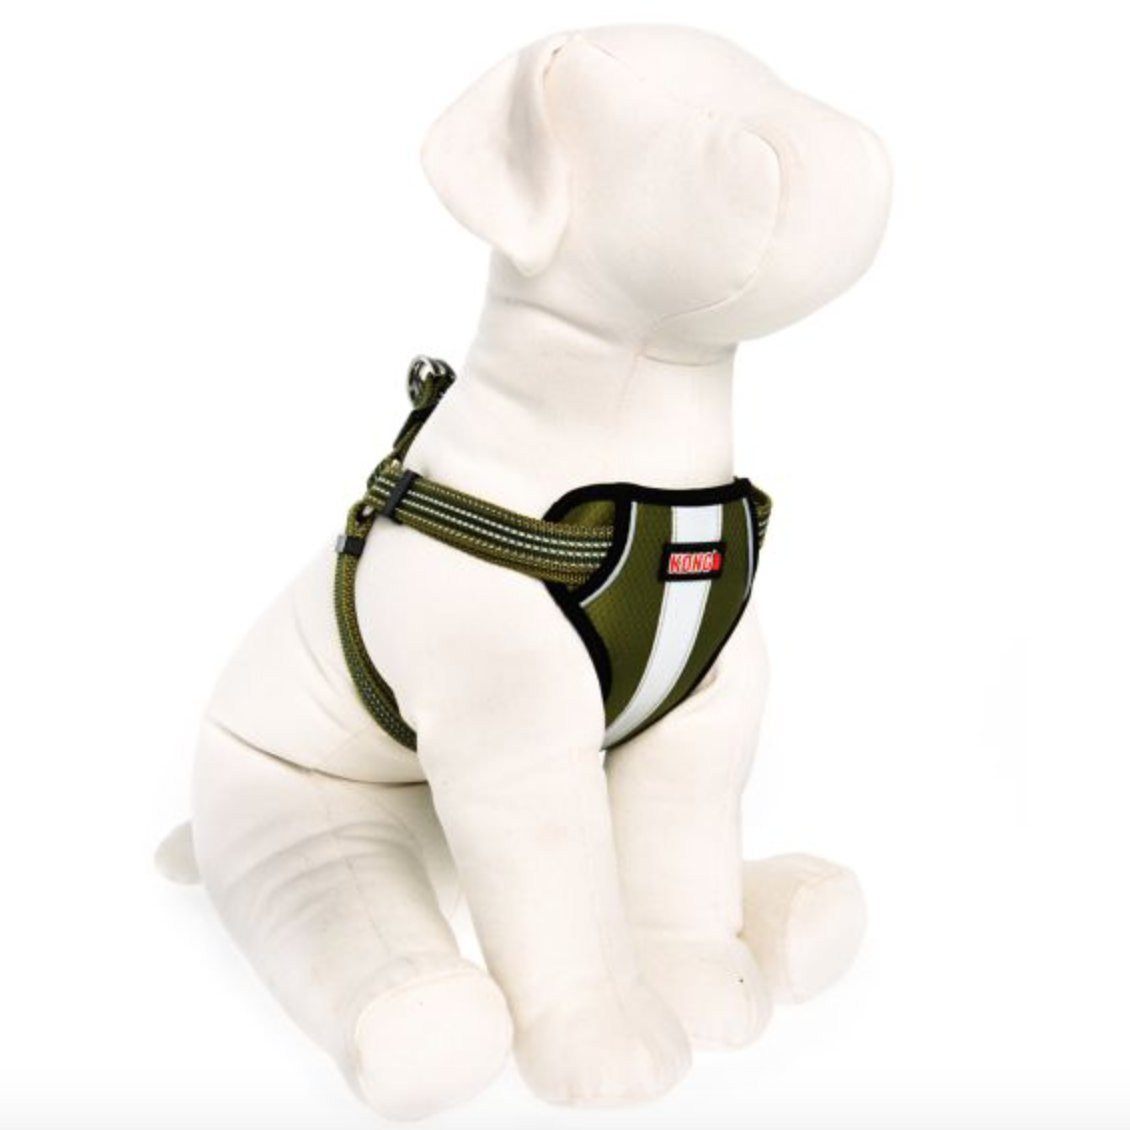 KONG Comfort Padded Reflective Chest Plate Dog Harness by Barker Brands Inc. (Medium, Green) by KONG